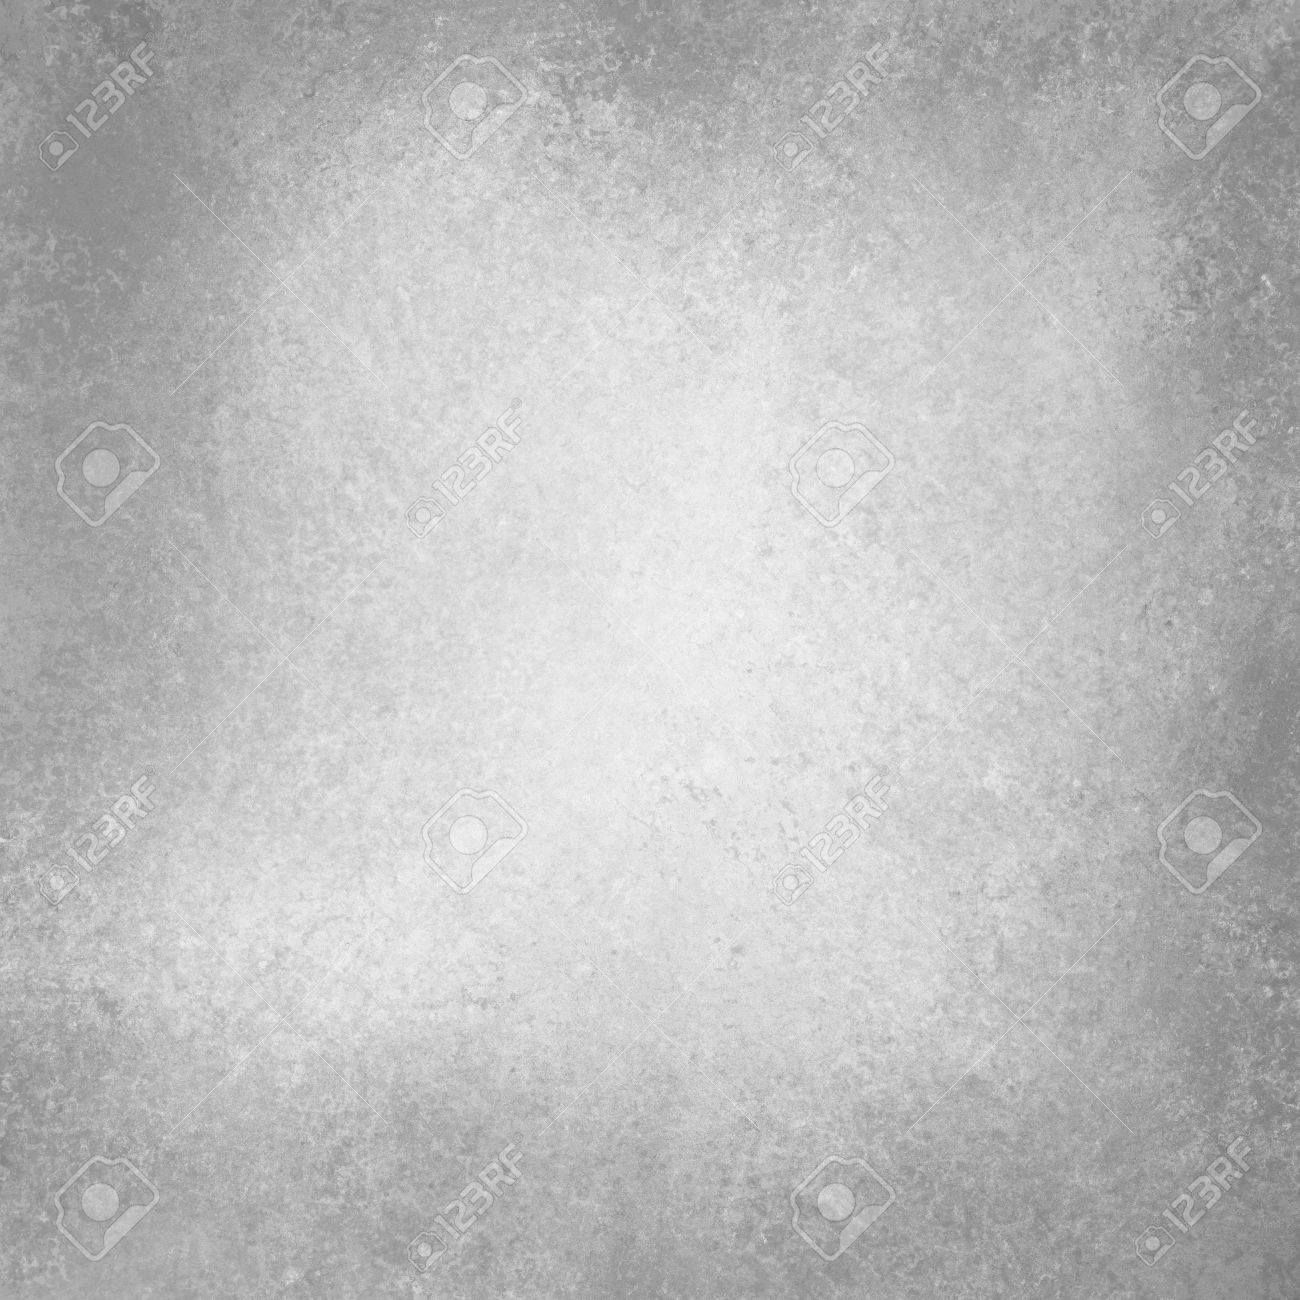 Old Gray Paper Background Black And White Vintage With Burnt Edges Or Grunge Border